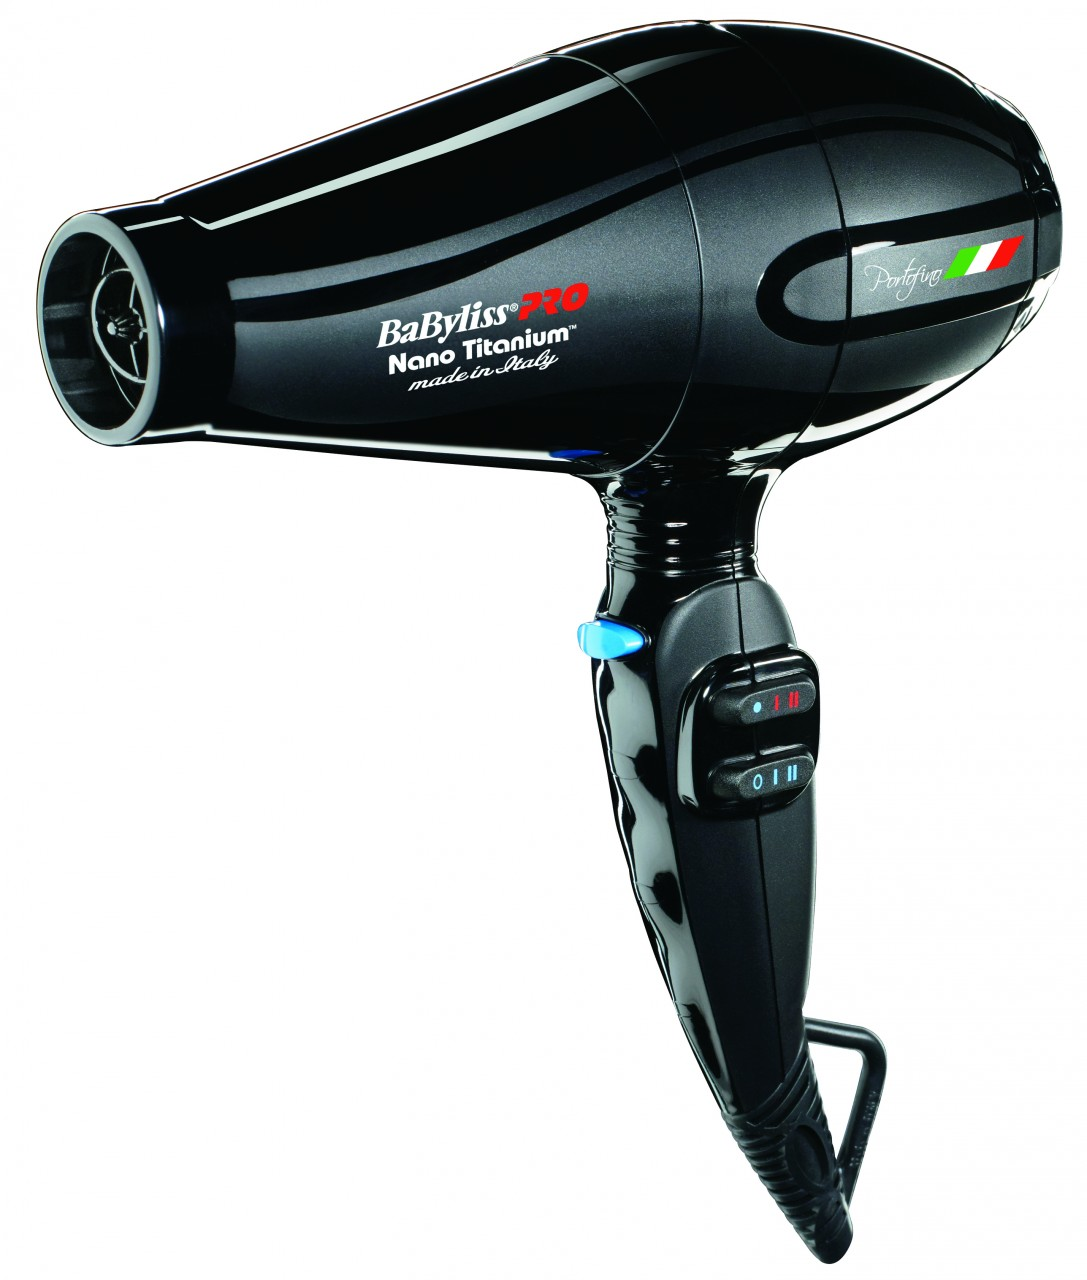 Hair dryers Buying guide at Argos.co.uk - Your Guide to Buying